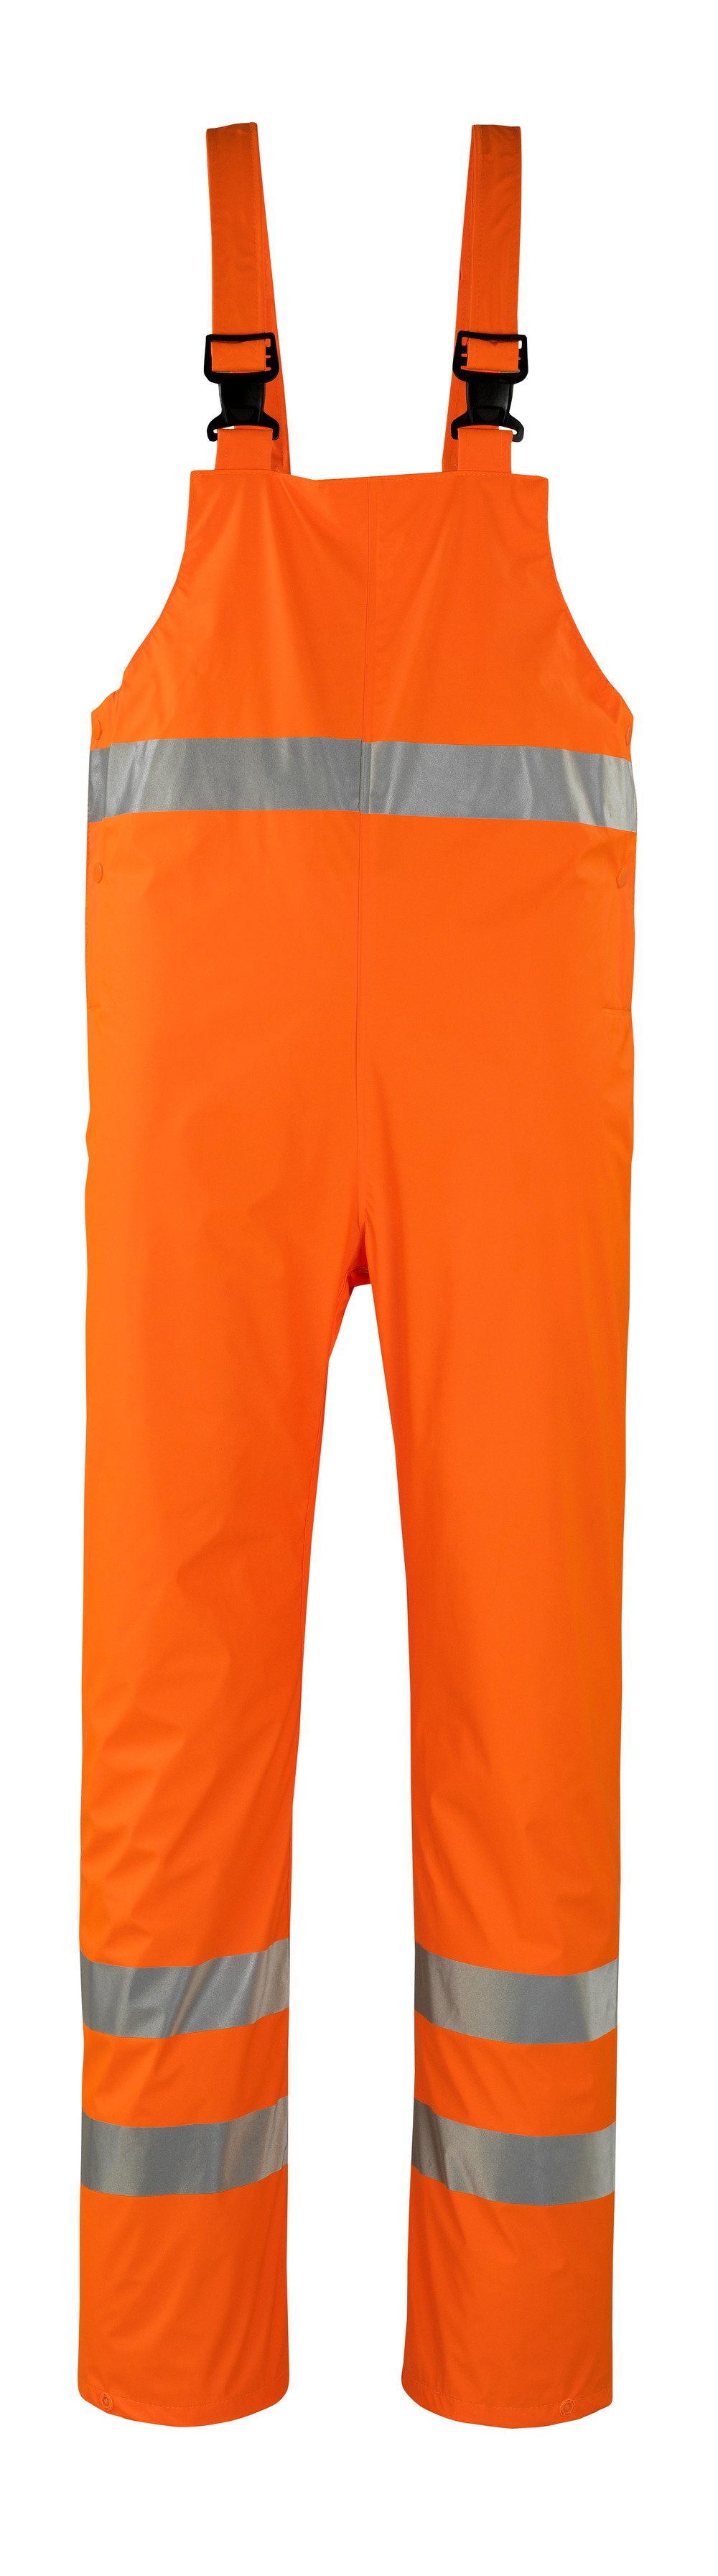 50103-814-14 Regenlatzhose - hi-vis Orange